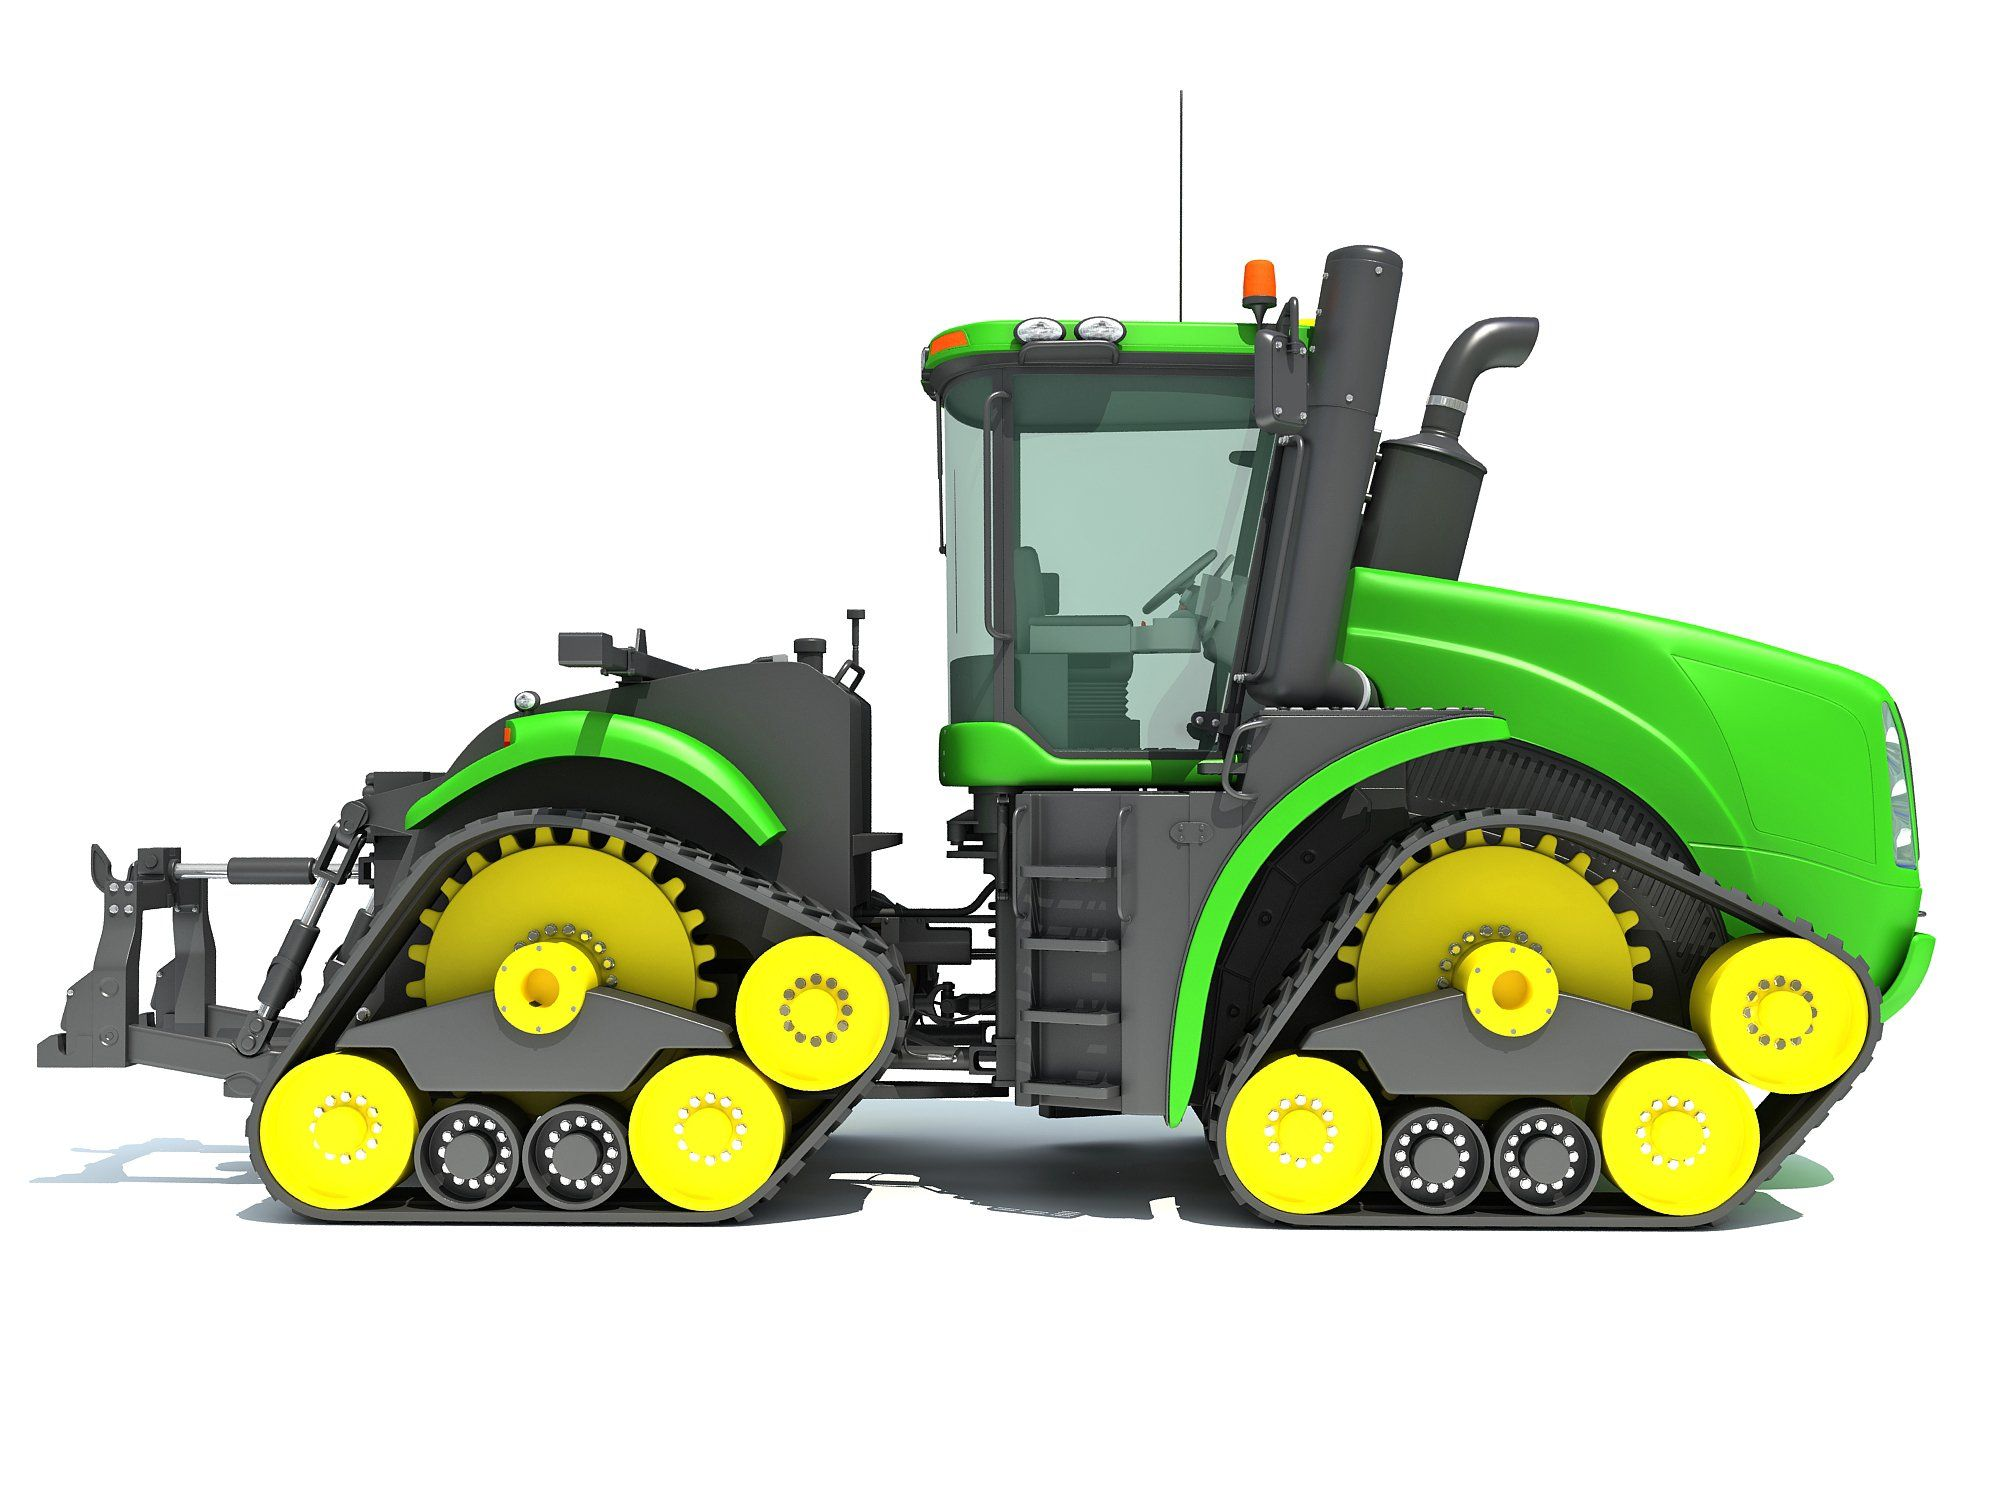 Tractor Tracked Power 3D Models #Tractor #Tracked #Power  #3d #3dmodels #3dmodel #3dmodeling #3dsmax #3dgraphics #3ddesign